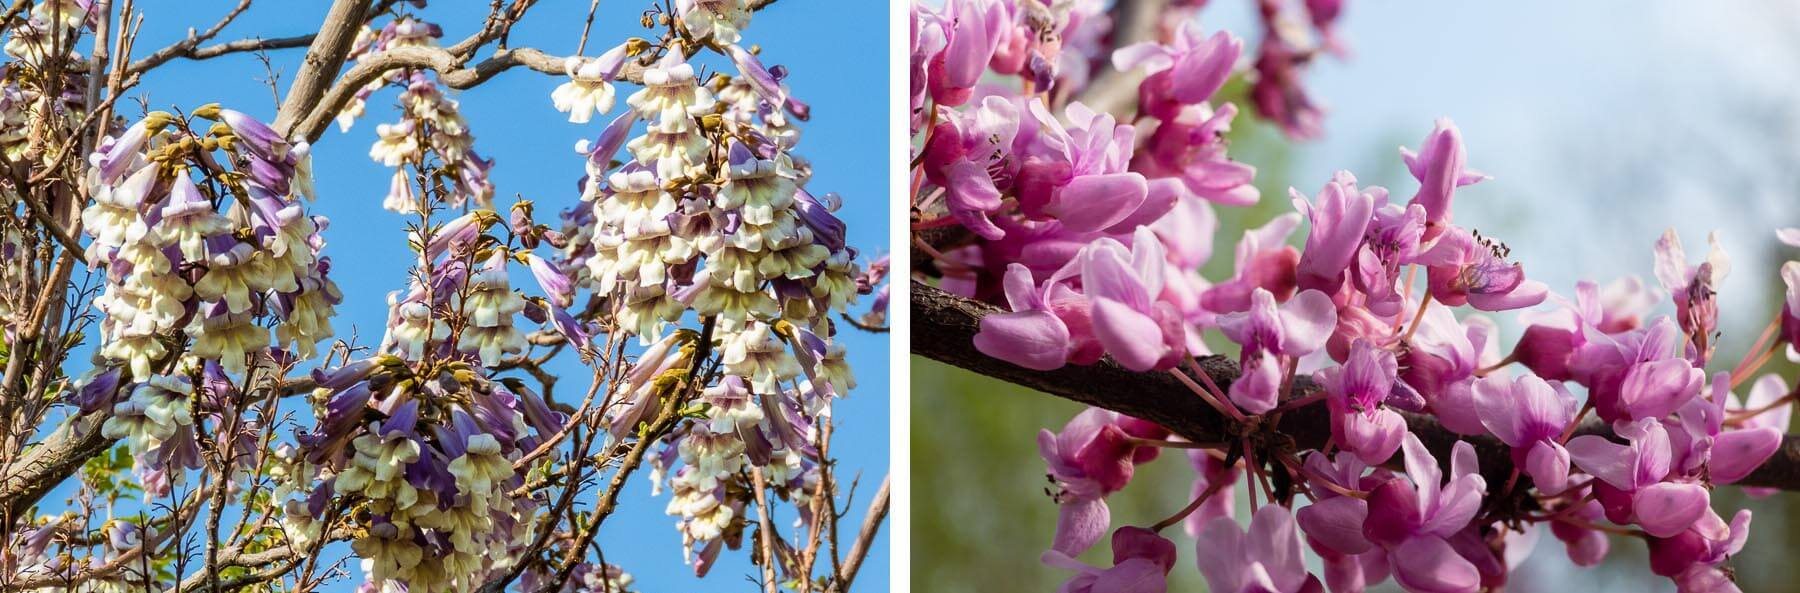 Purple and pink flowers adorn bare branches